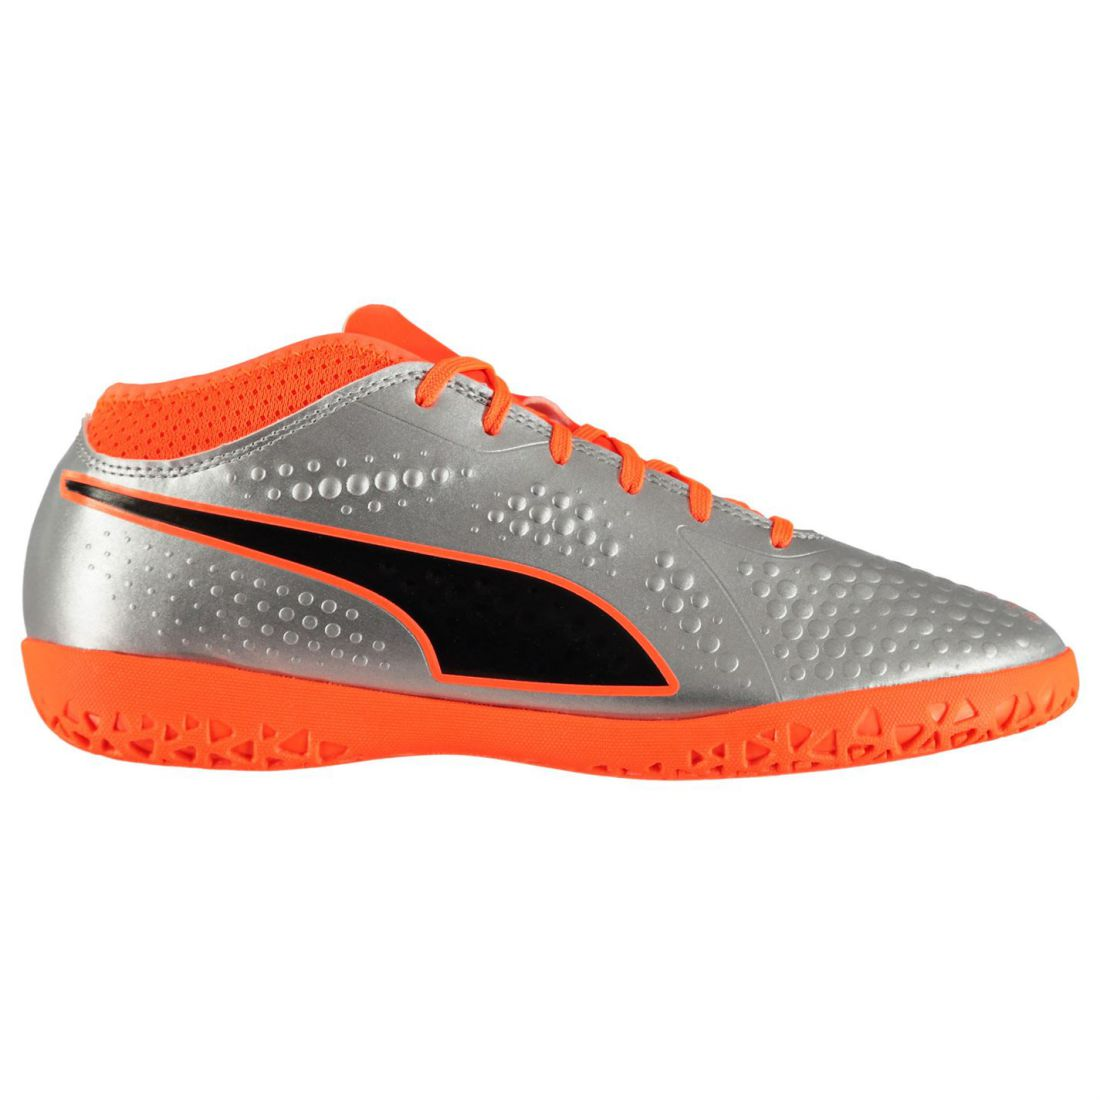 cbf344aafd360d Puma Mens ONE 4 Indoor Football Trainers Up Textured Boots Lace  nogatf1494-Football Boots